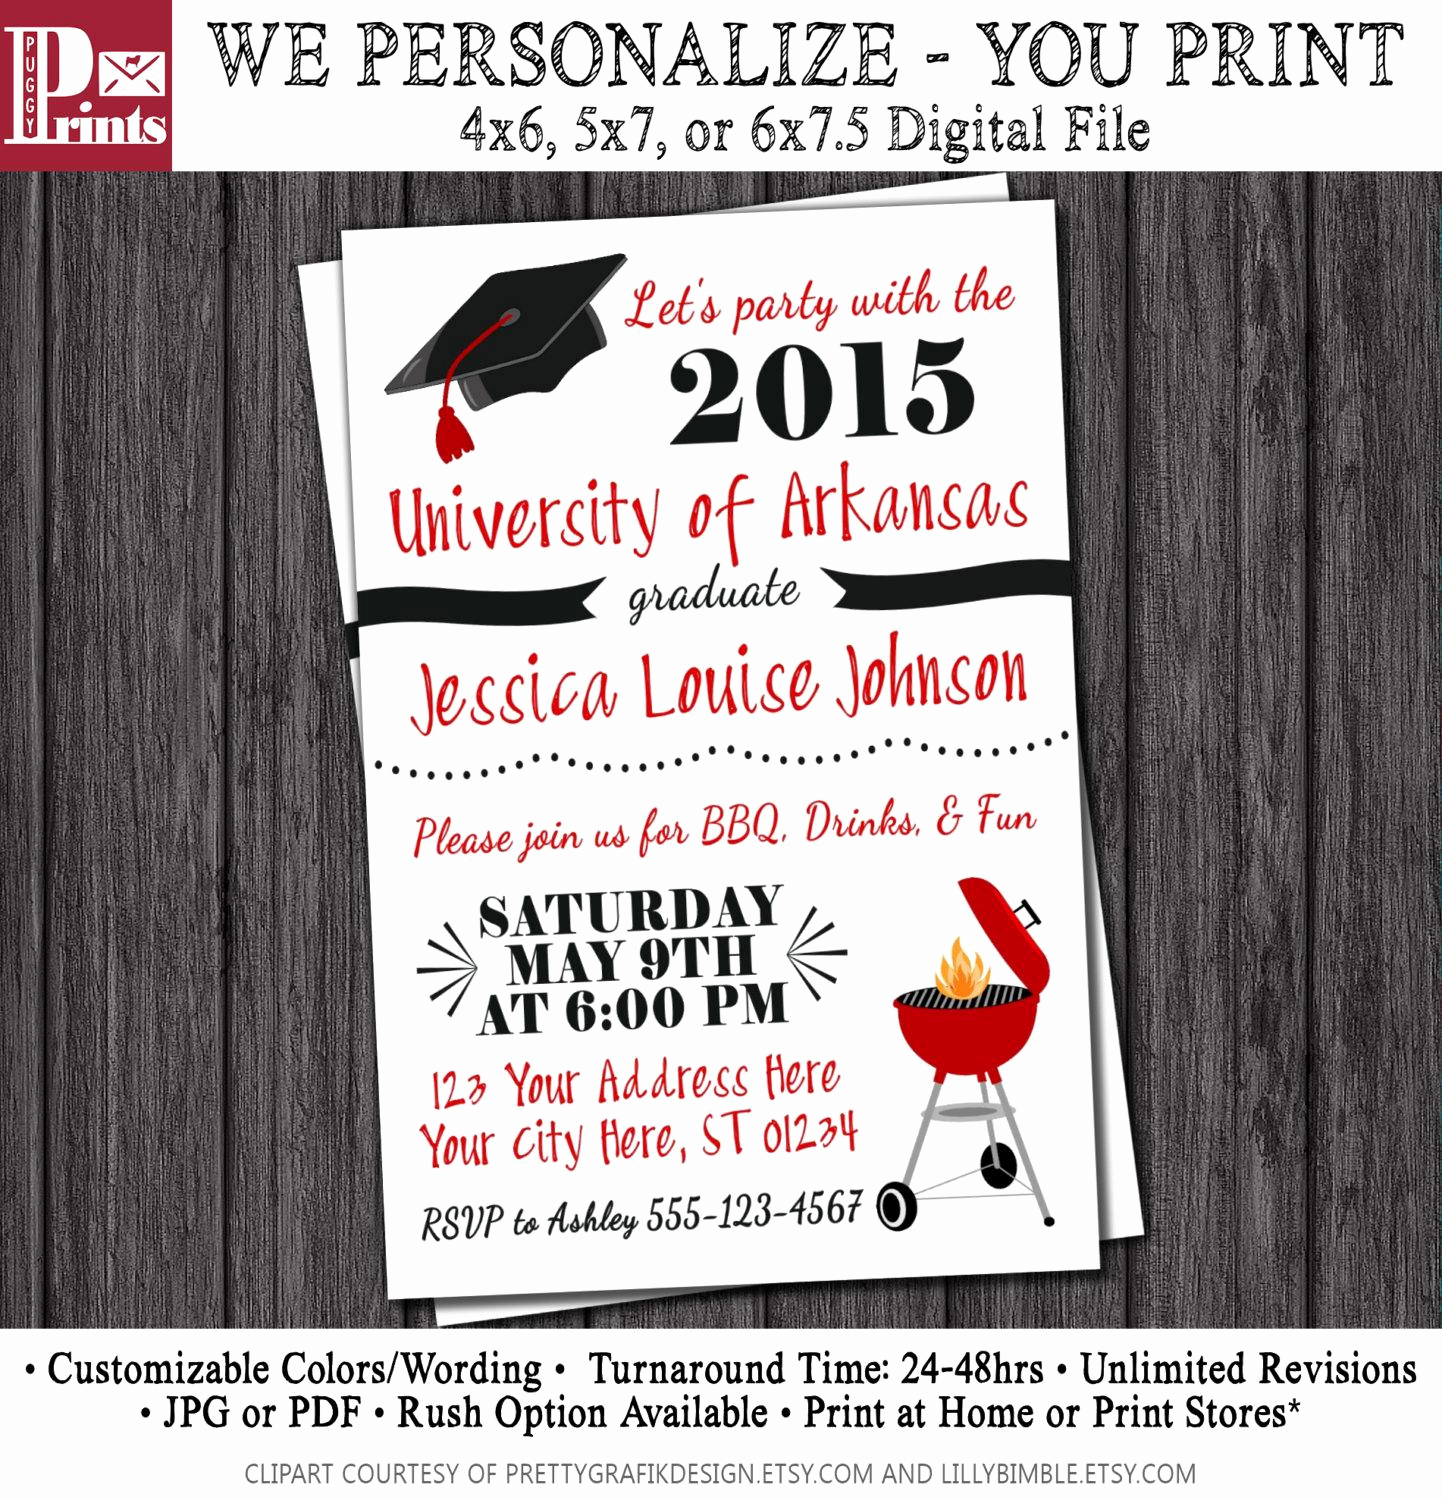 College Graduation Invitations Templates Unique College Graduation Party Invitations